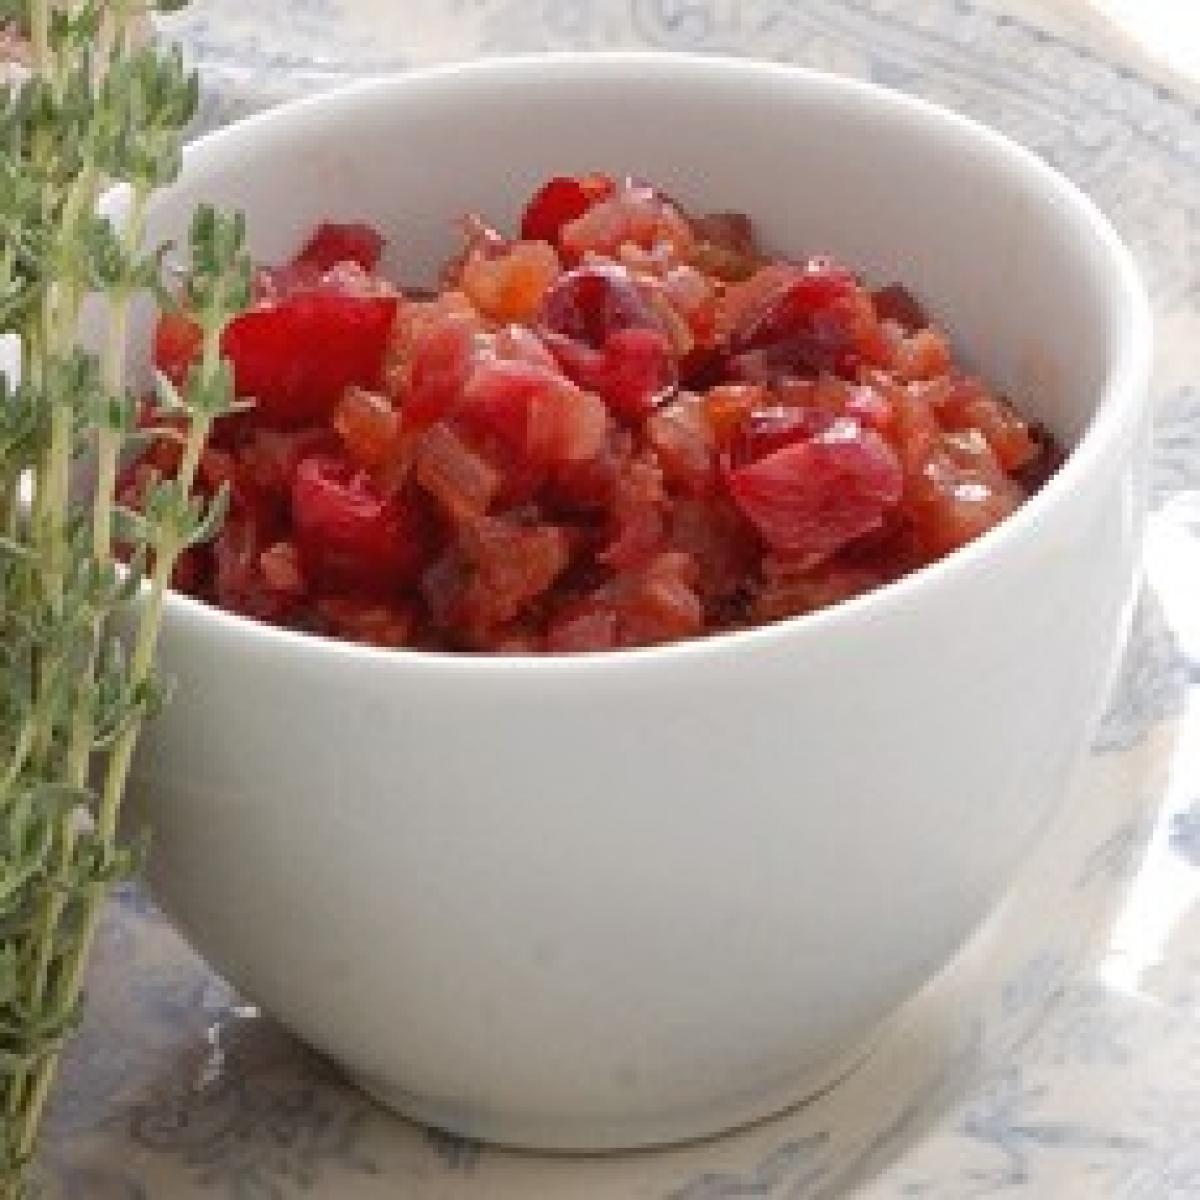 A picture of Delia's Cranberry and Onion Confit recipe